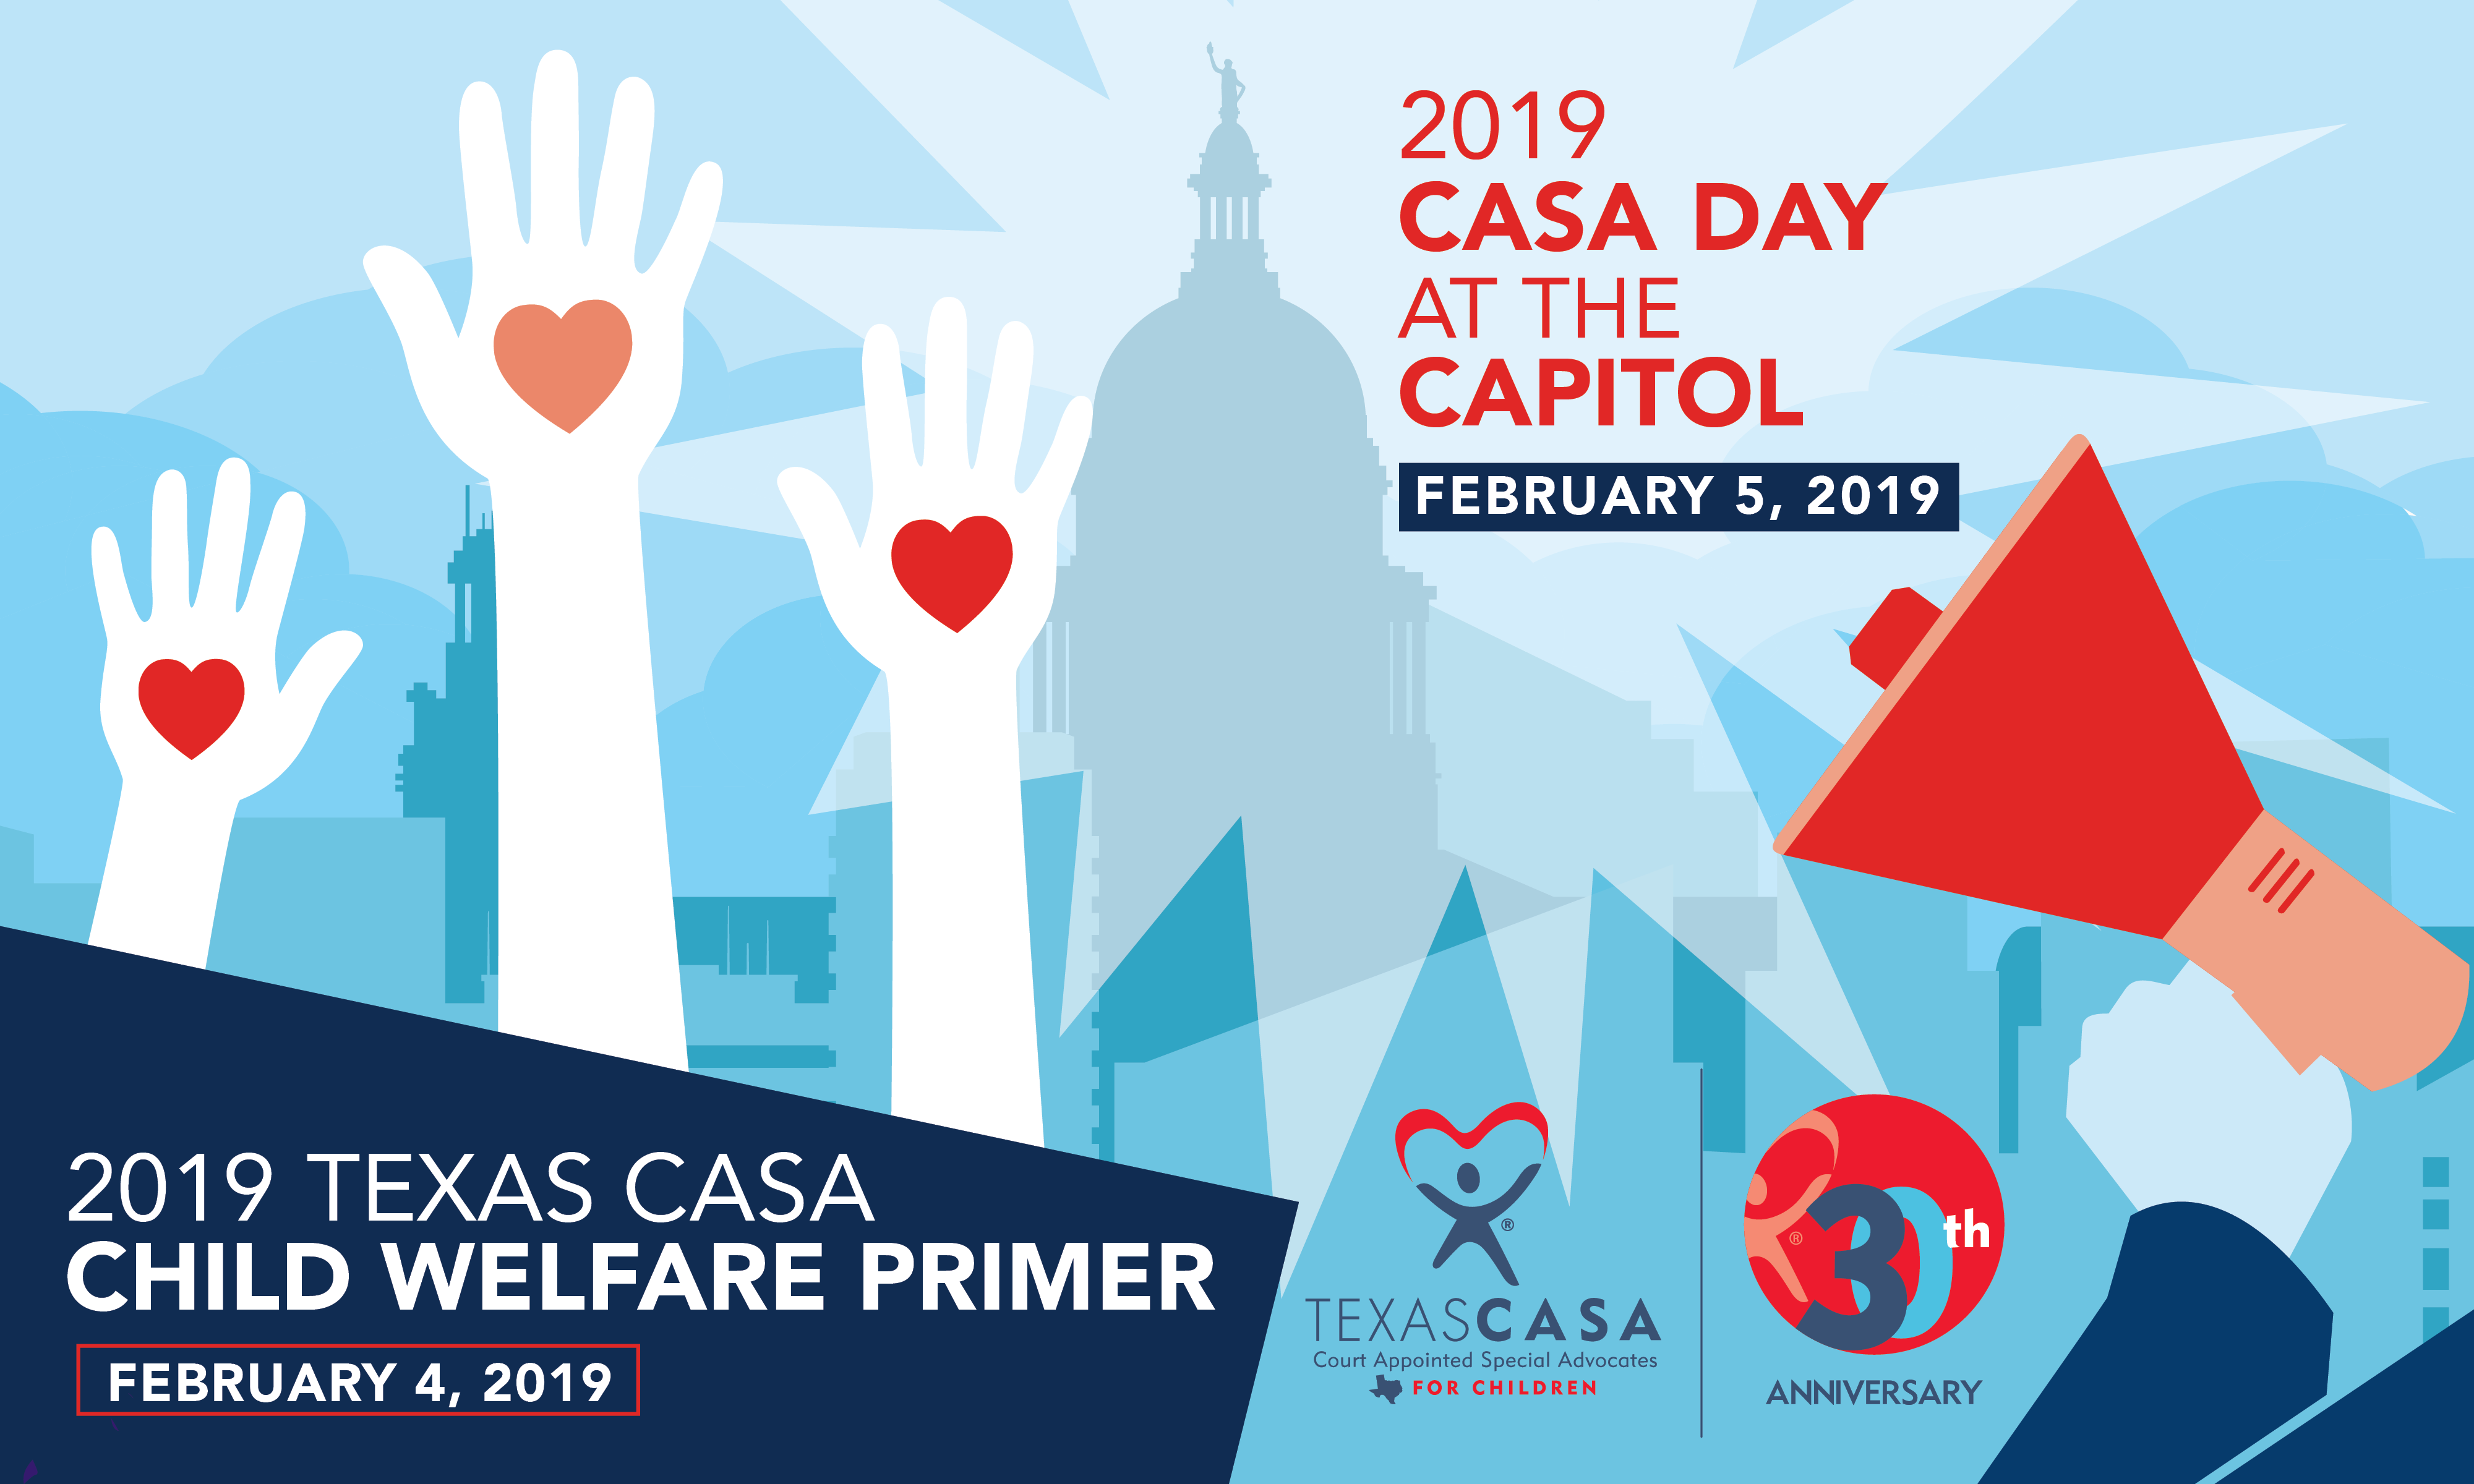 2019 Child Welfare Primer & CASA Day at the Capitol